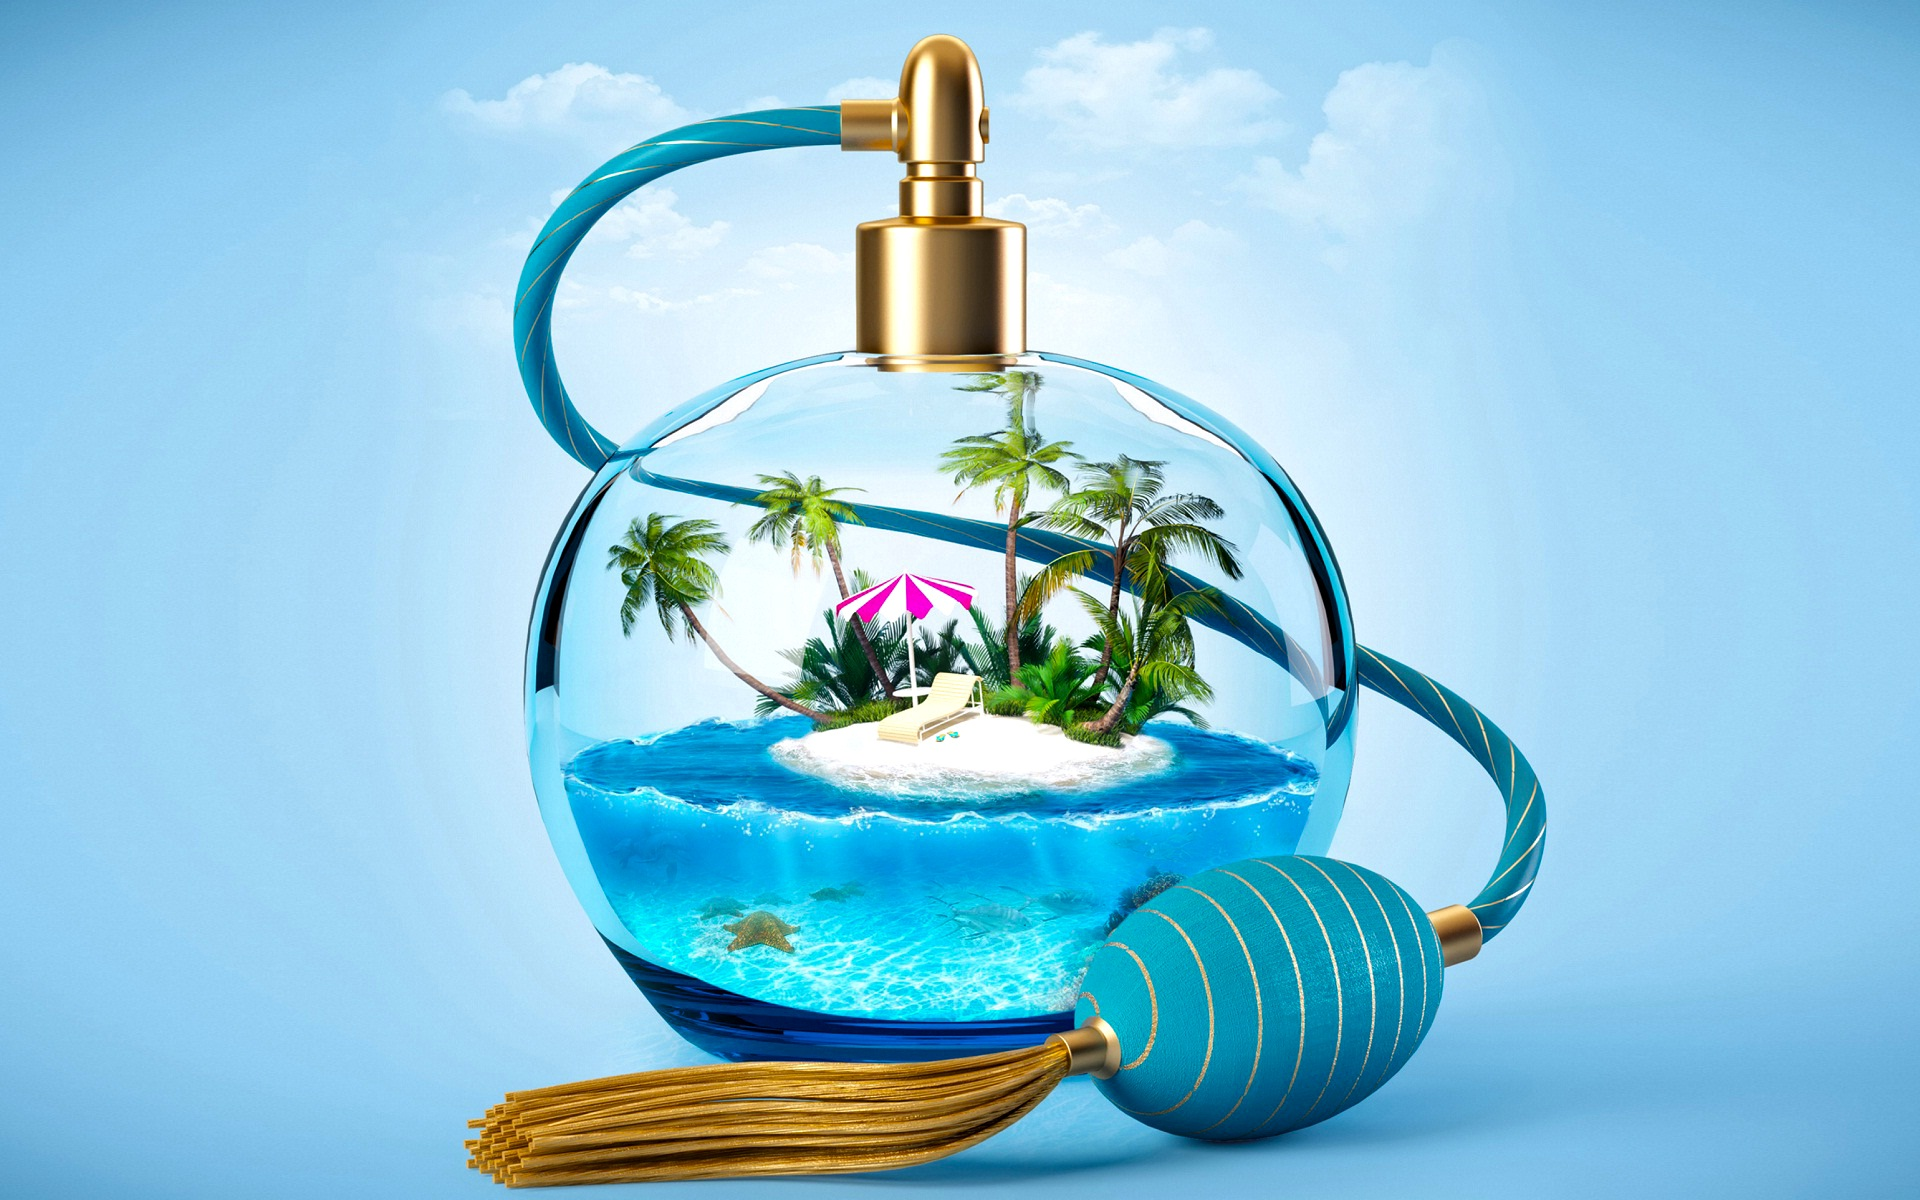 3d Animated Wallpaper Windows 8 Summer Time And Small Island In A Bottle Ingenious Perfume